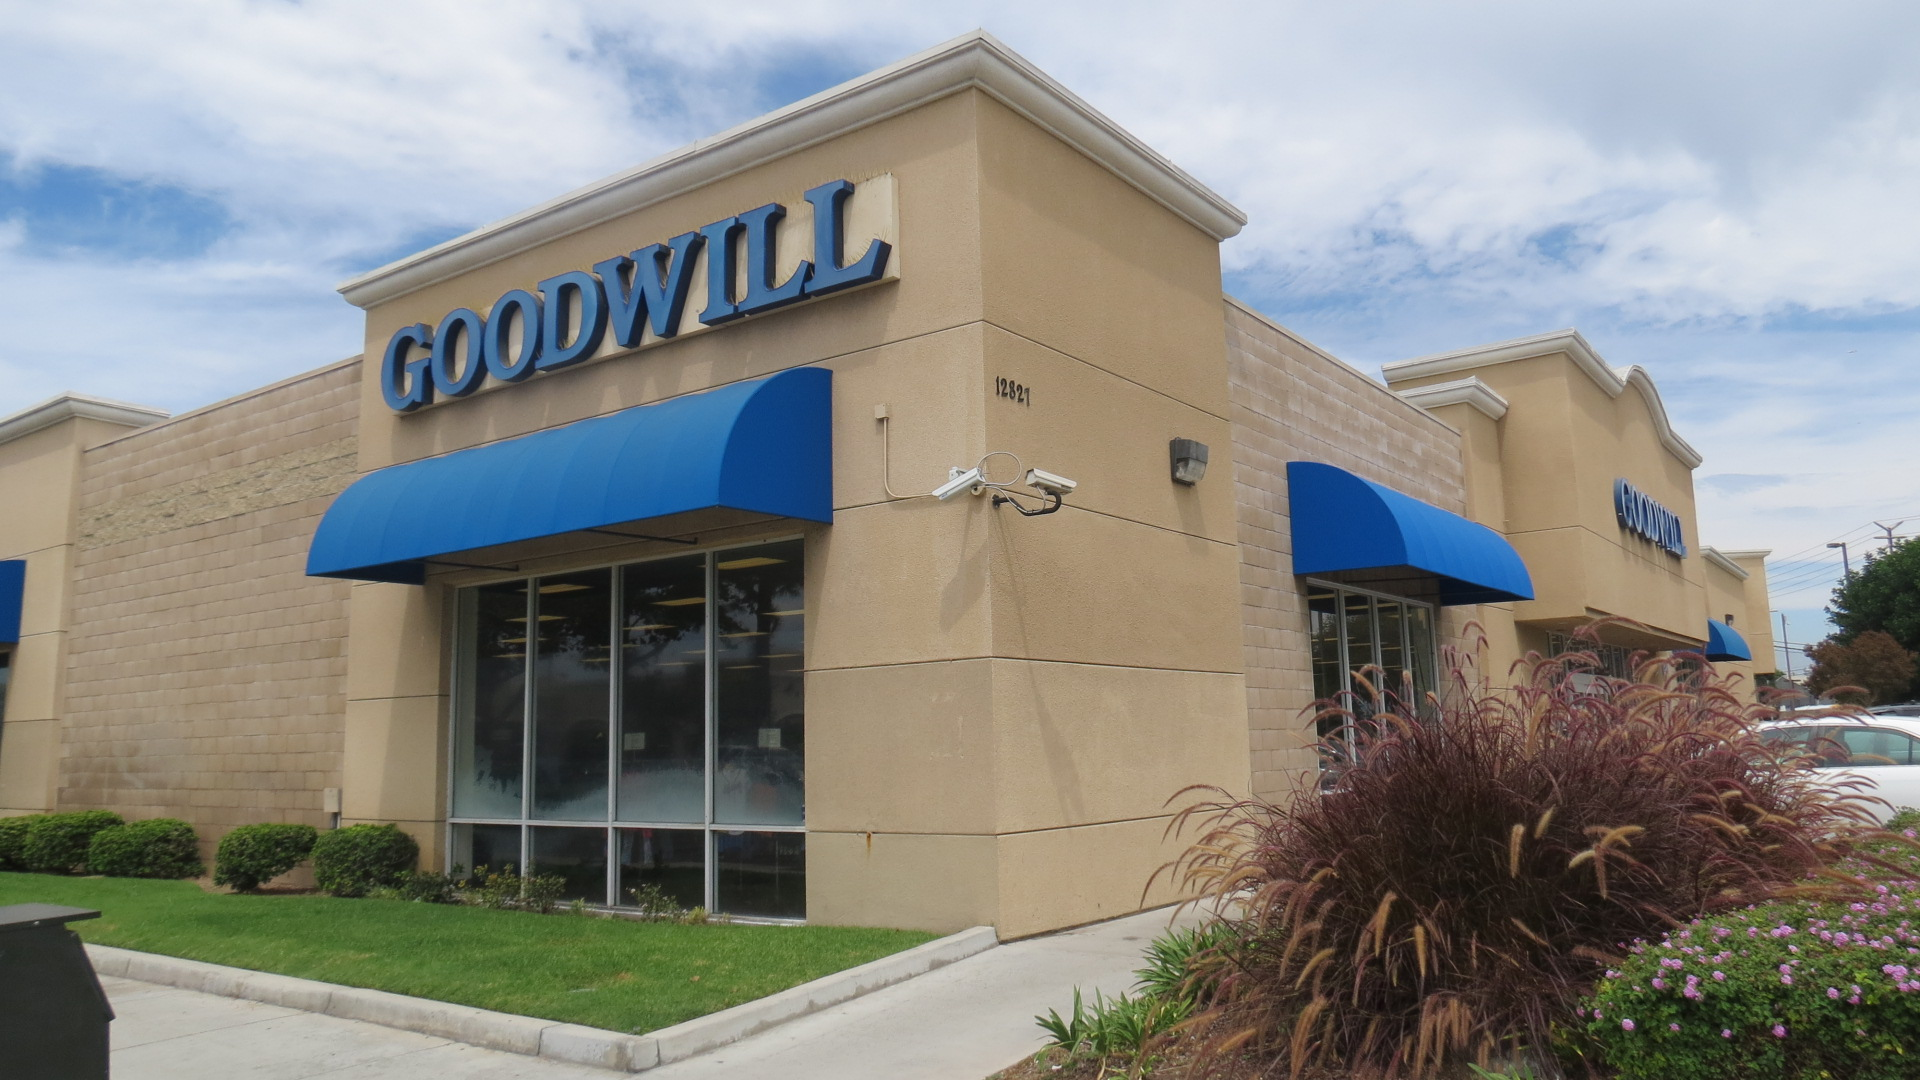 Norwalk Goodwill Retail Store & Donation Center